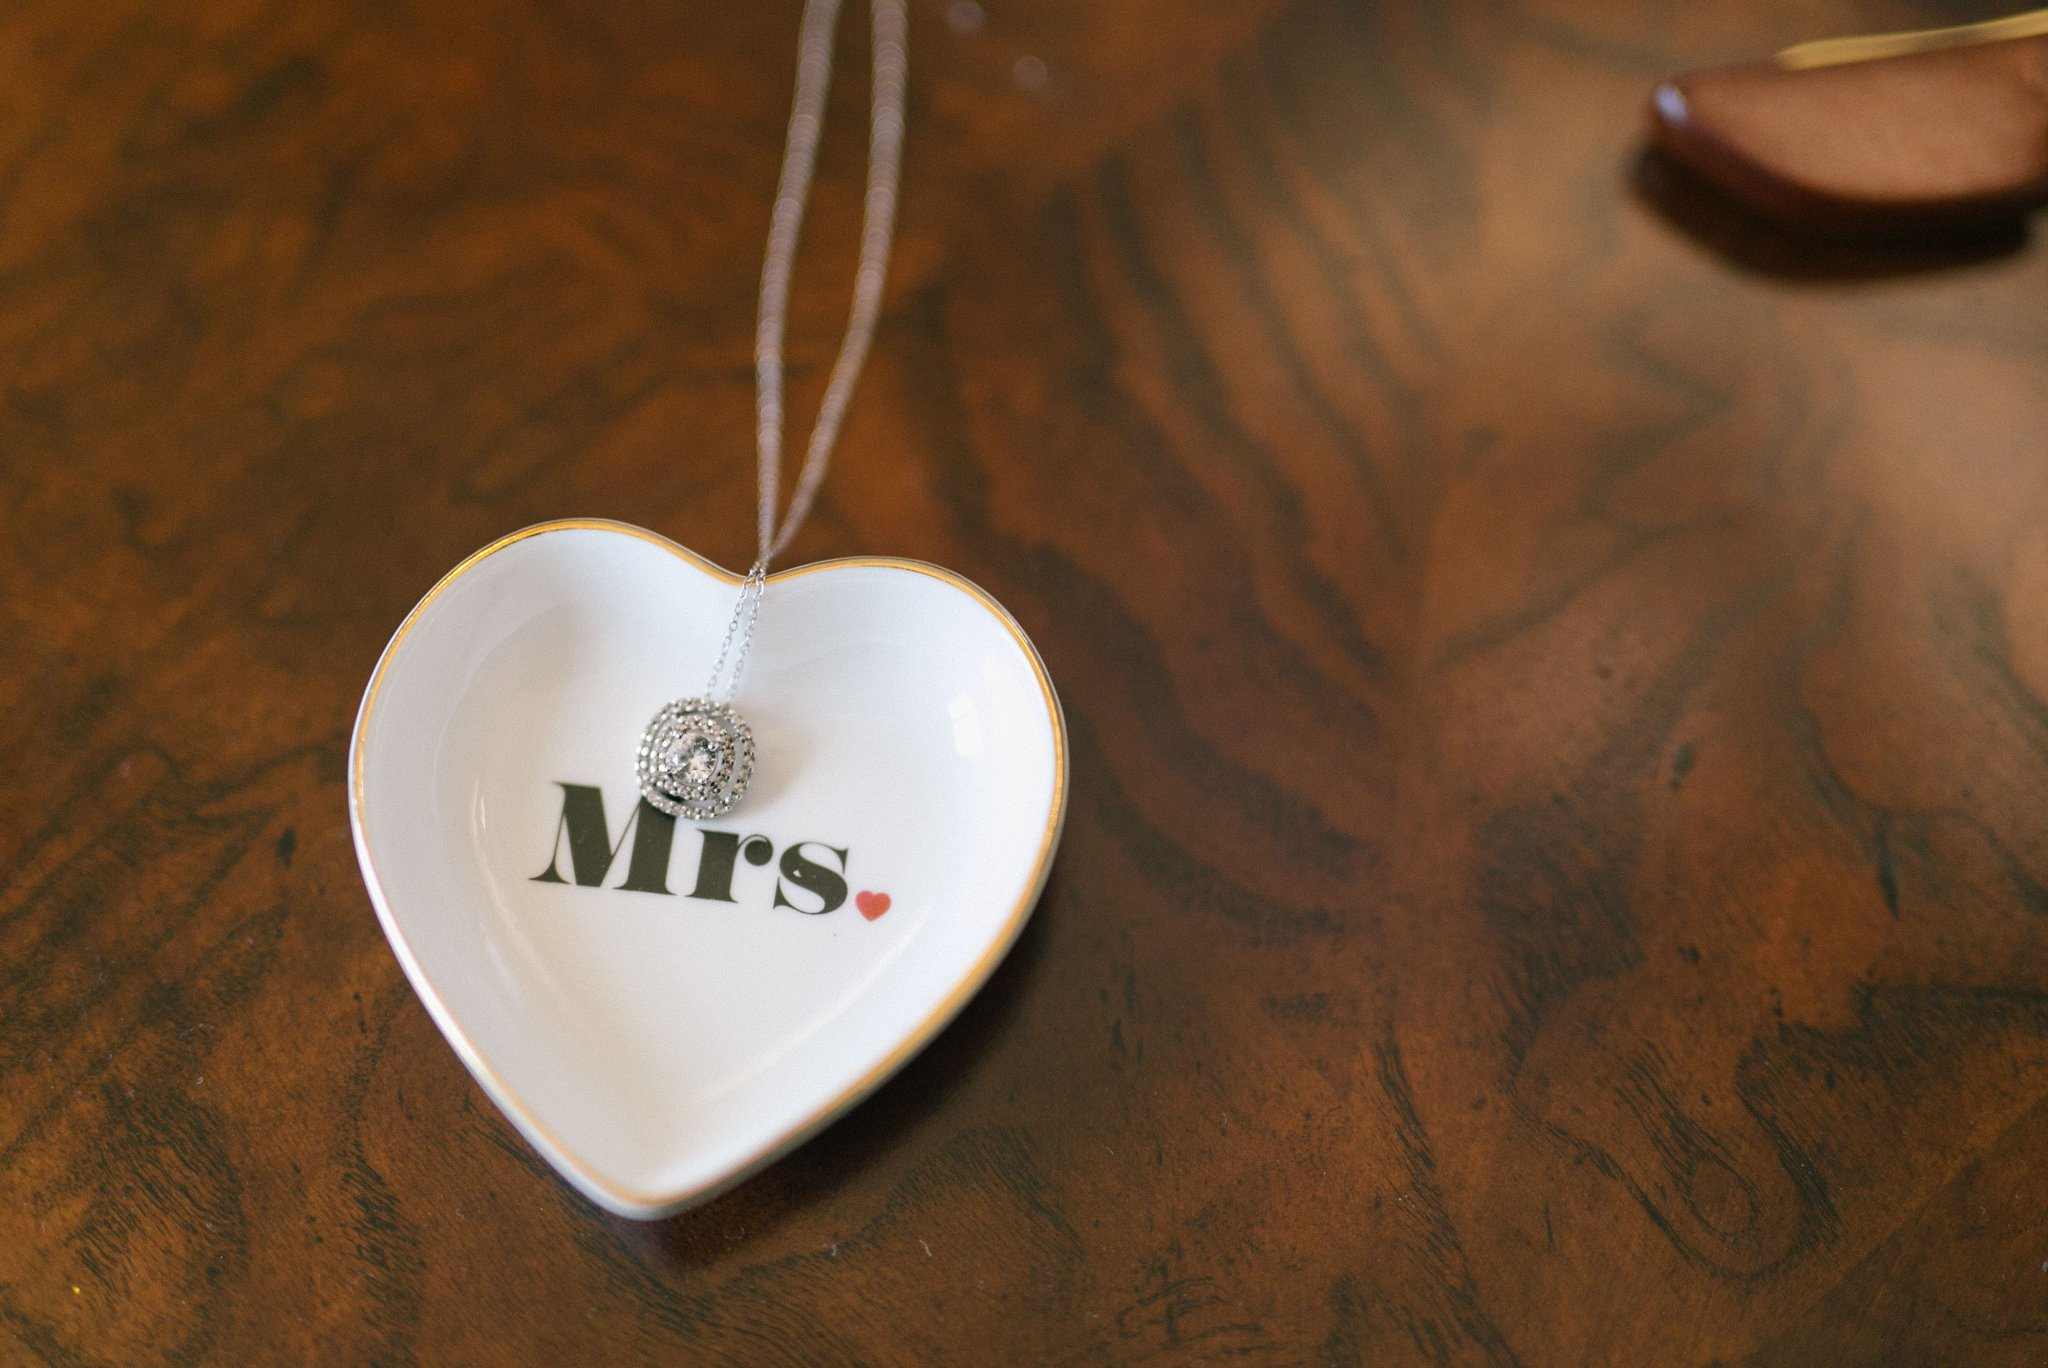 Phoenix wedding details necklace in Mrs heart shaped dish